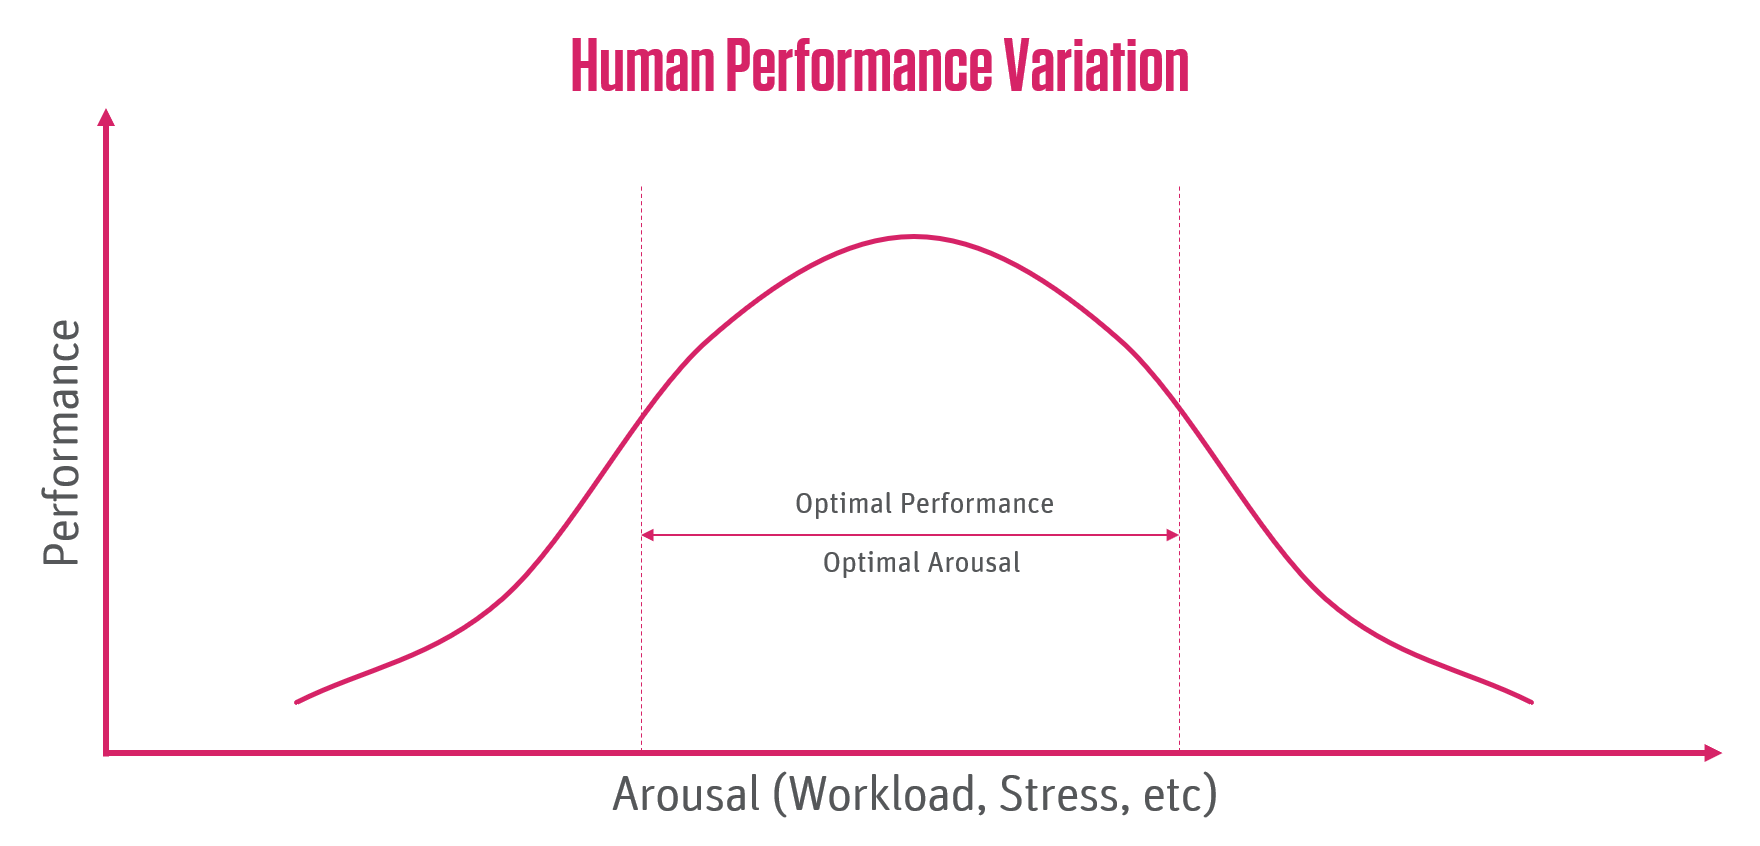 Yerkes Dodsons curve for human performance